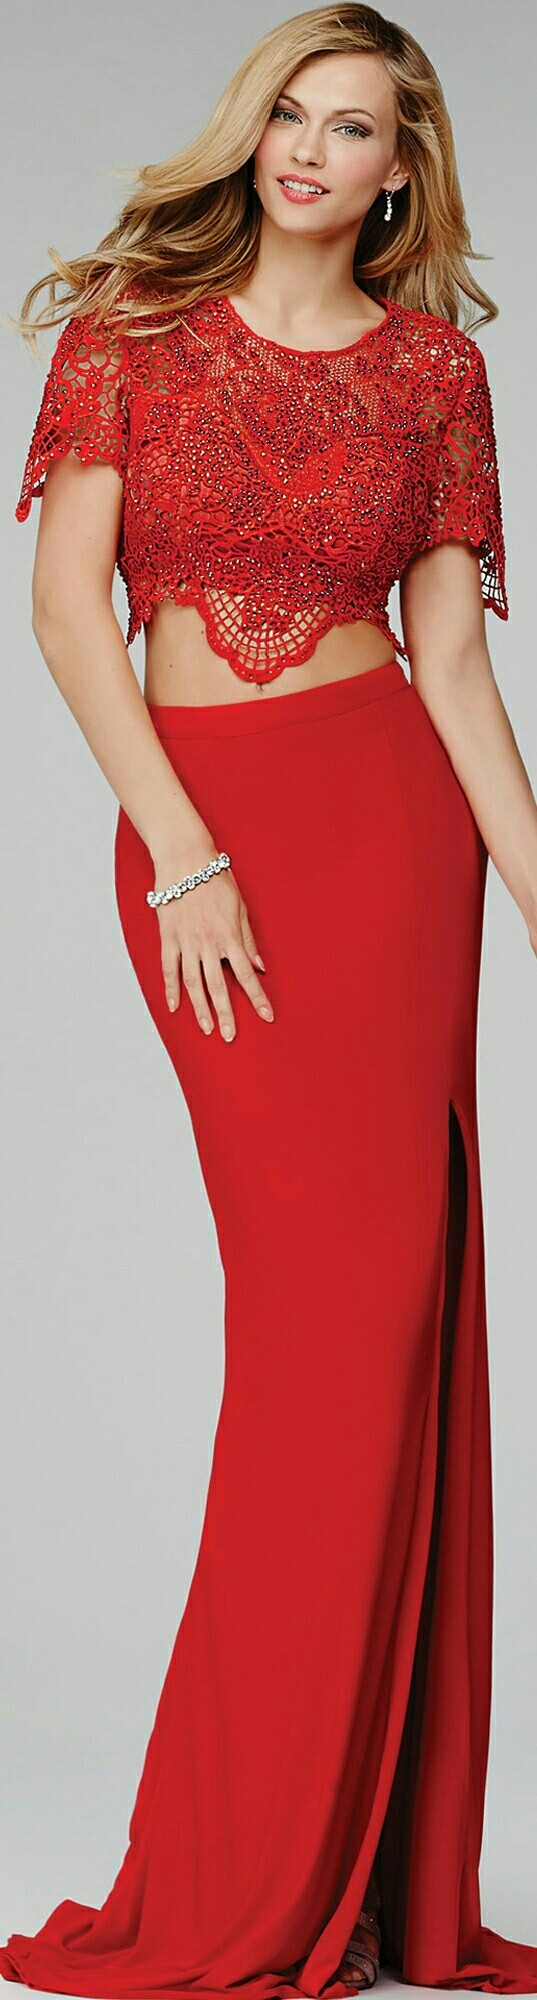 Jovani piece cardinal red prom gown faushae dress up